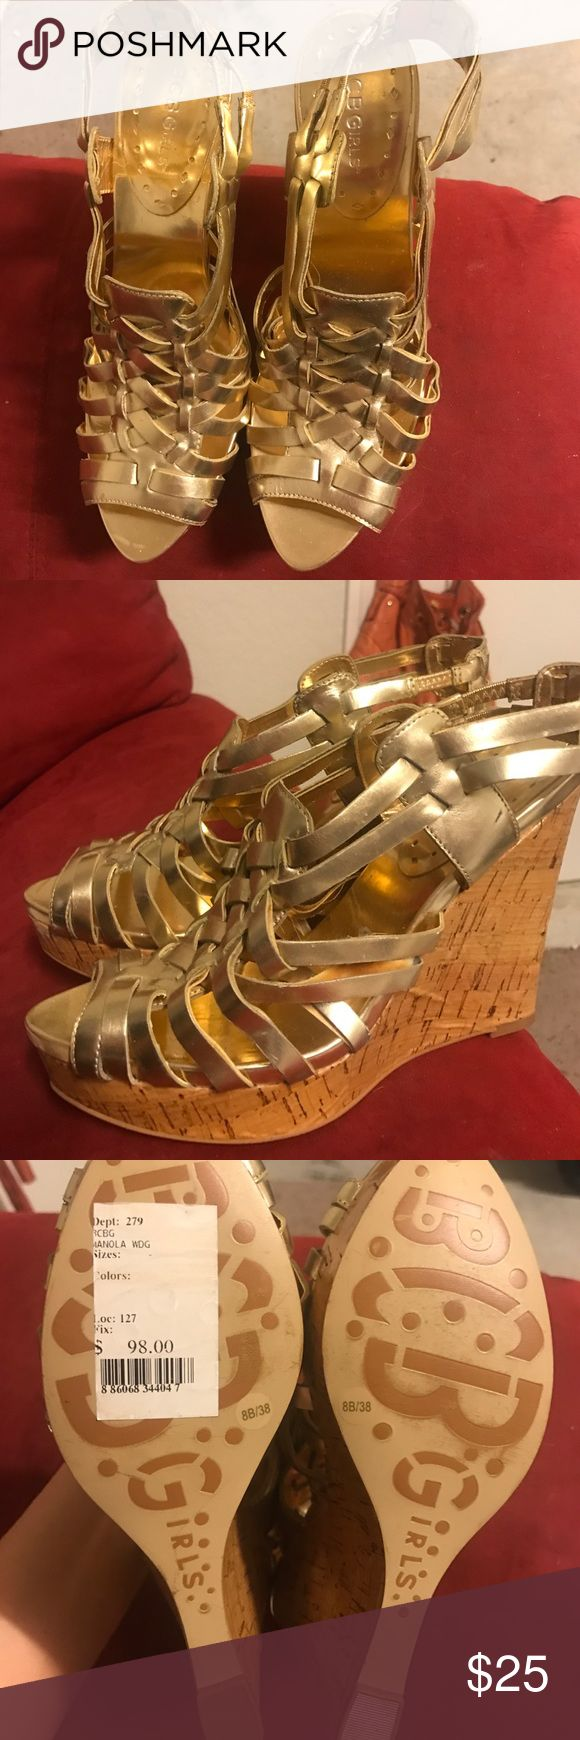 BCBGirls gold wedge heels Metallic gold 4 inch cork wedge heel. Metallic gold basket weave design. Easy to walk in. Cute with a dress or with jeans! BCBGirls Shoes Wedges